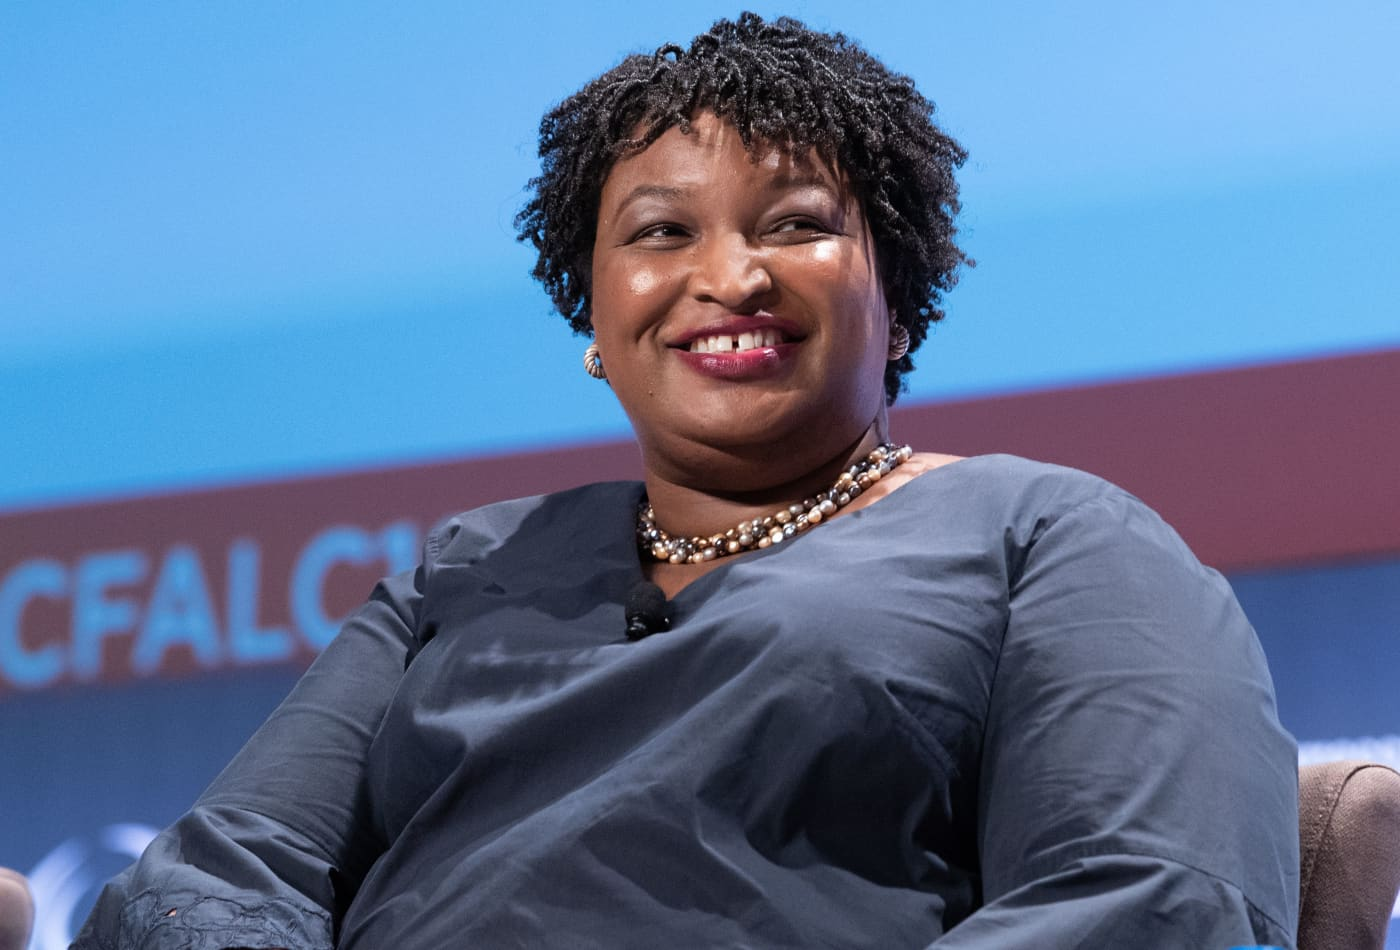 Stacey Abrams among 2021 Nobel Peace Prize nominees